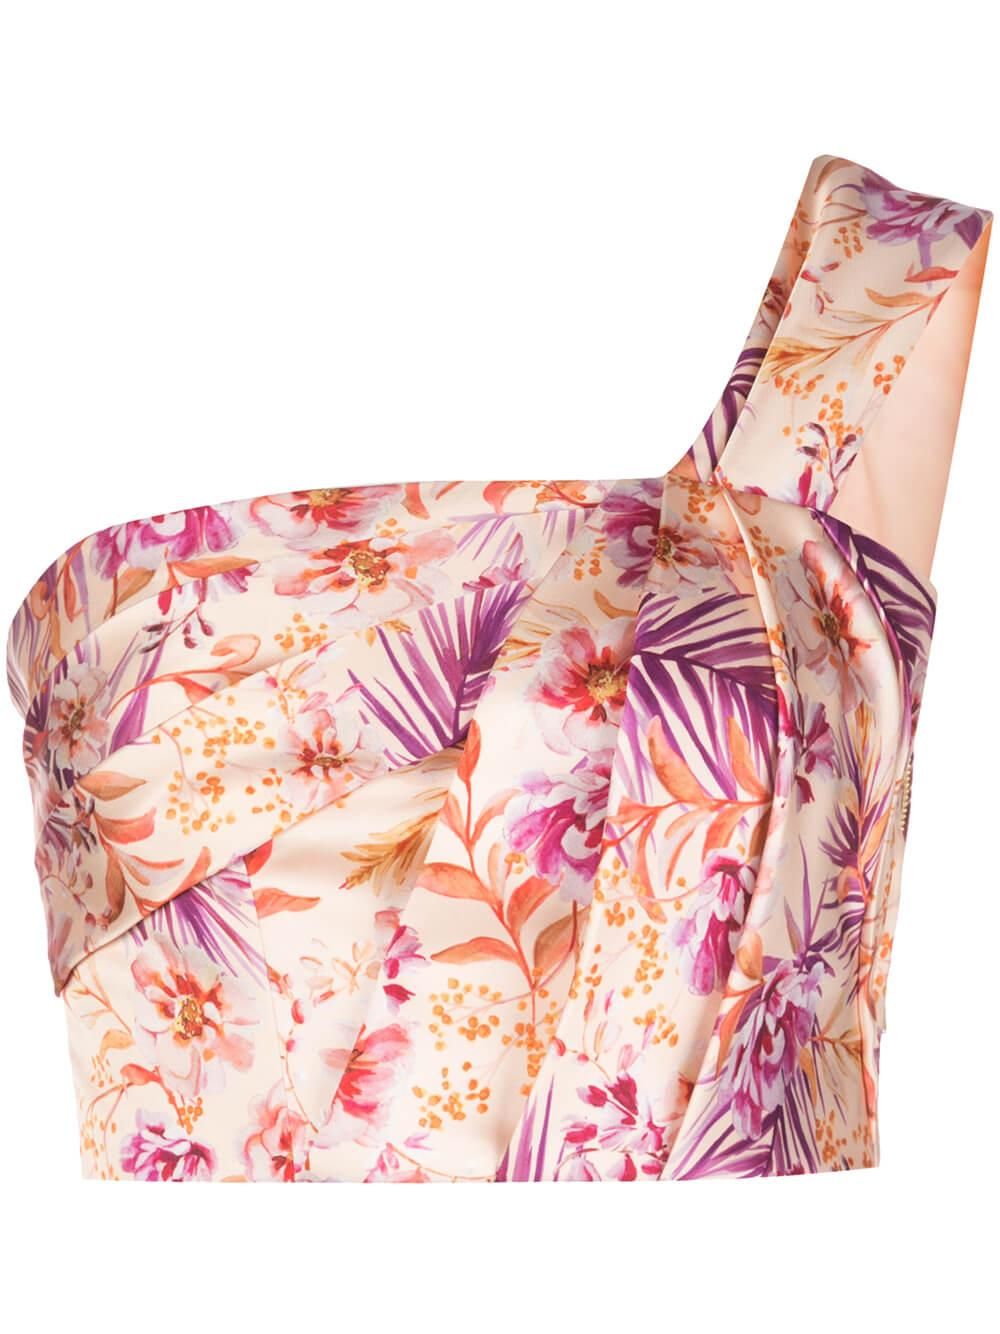 Madame Printed One Shoulder Top Item # 5822246